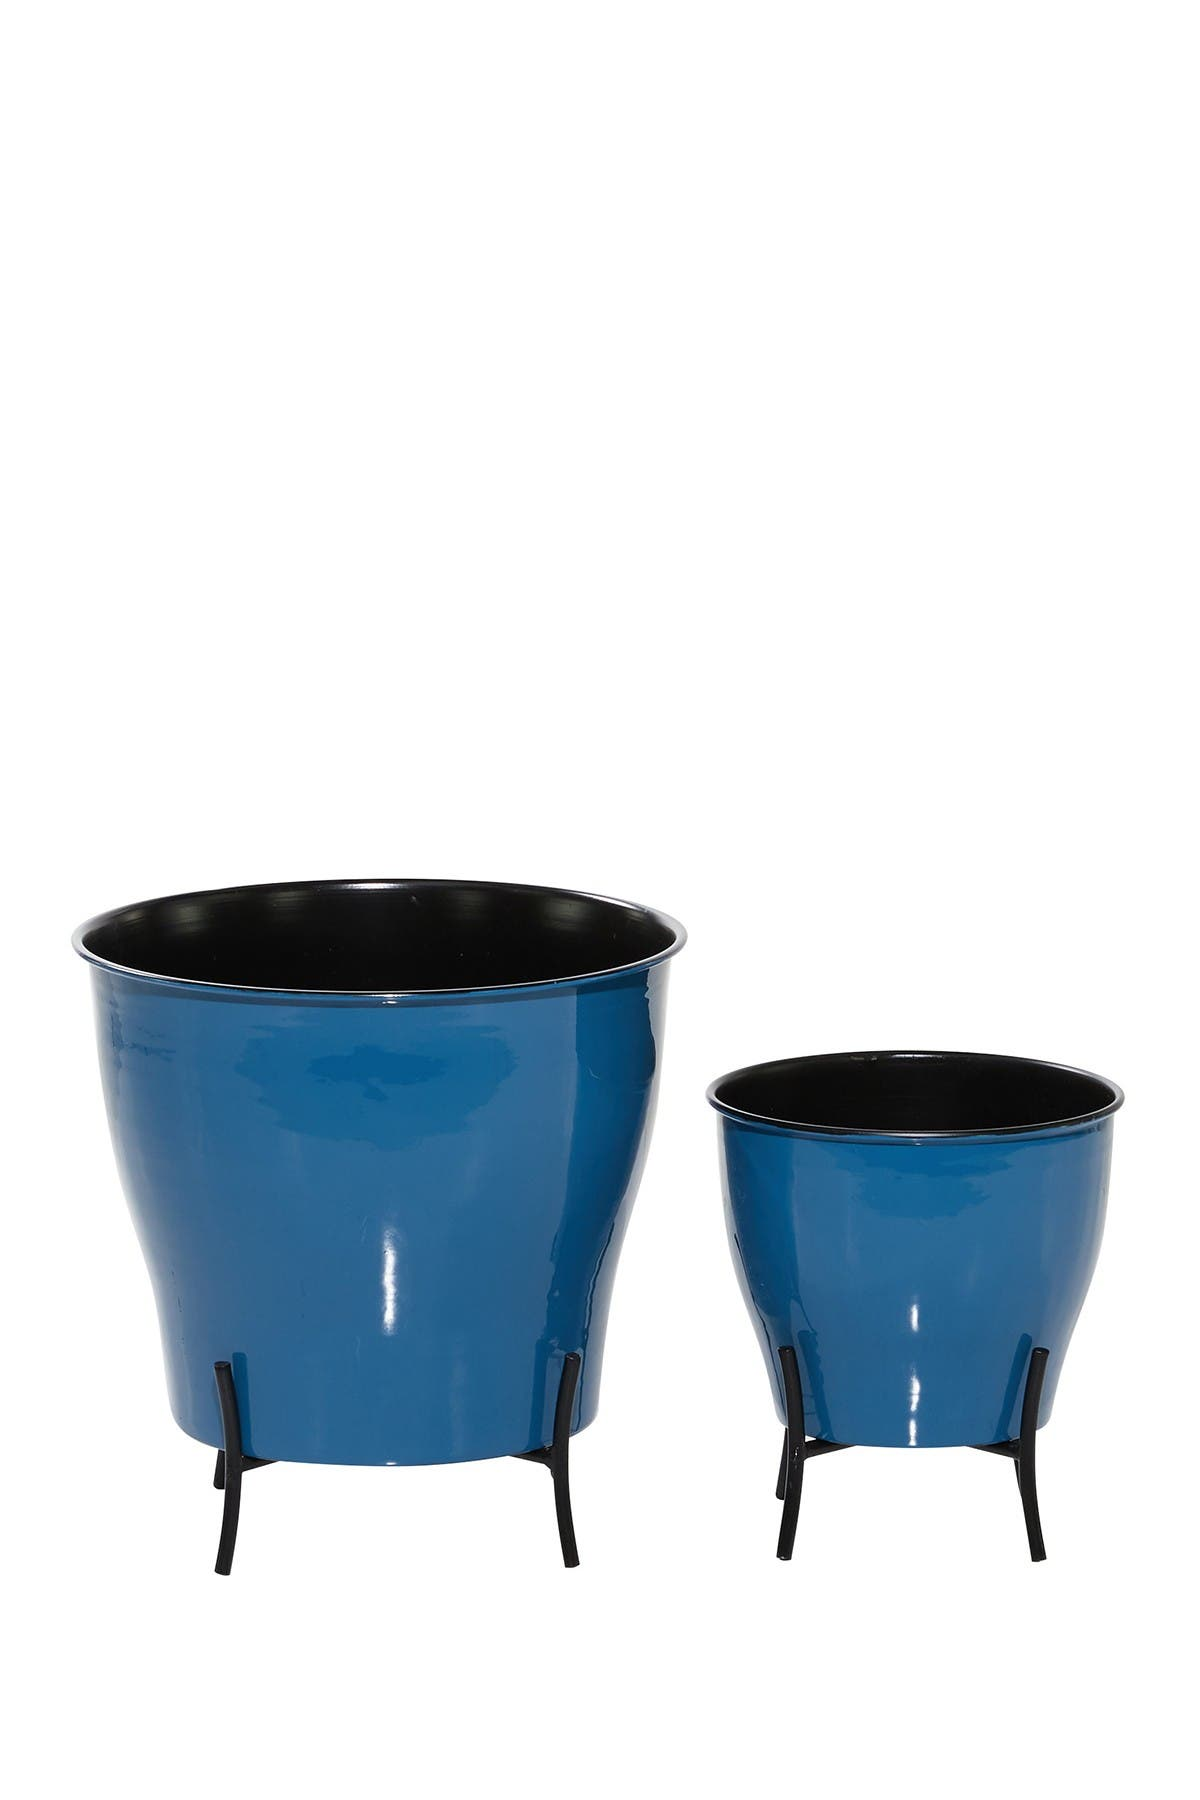 Image of Willow Row Round Blue Enamel Metal Planters with Gold Inlay and Stand - Set of 2